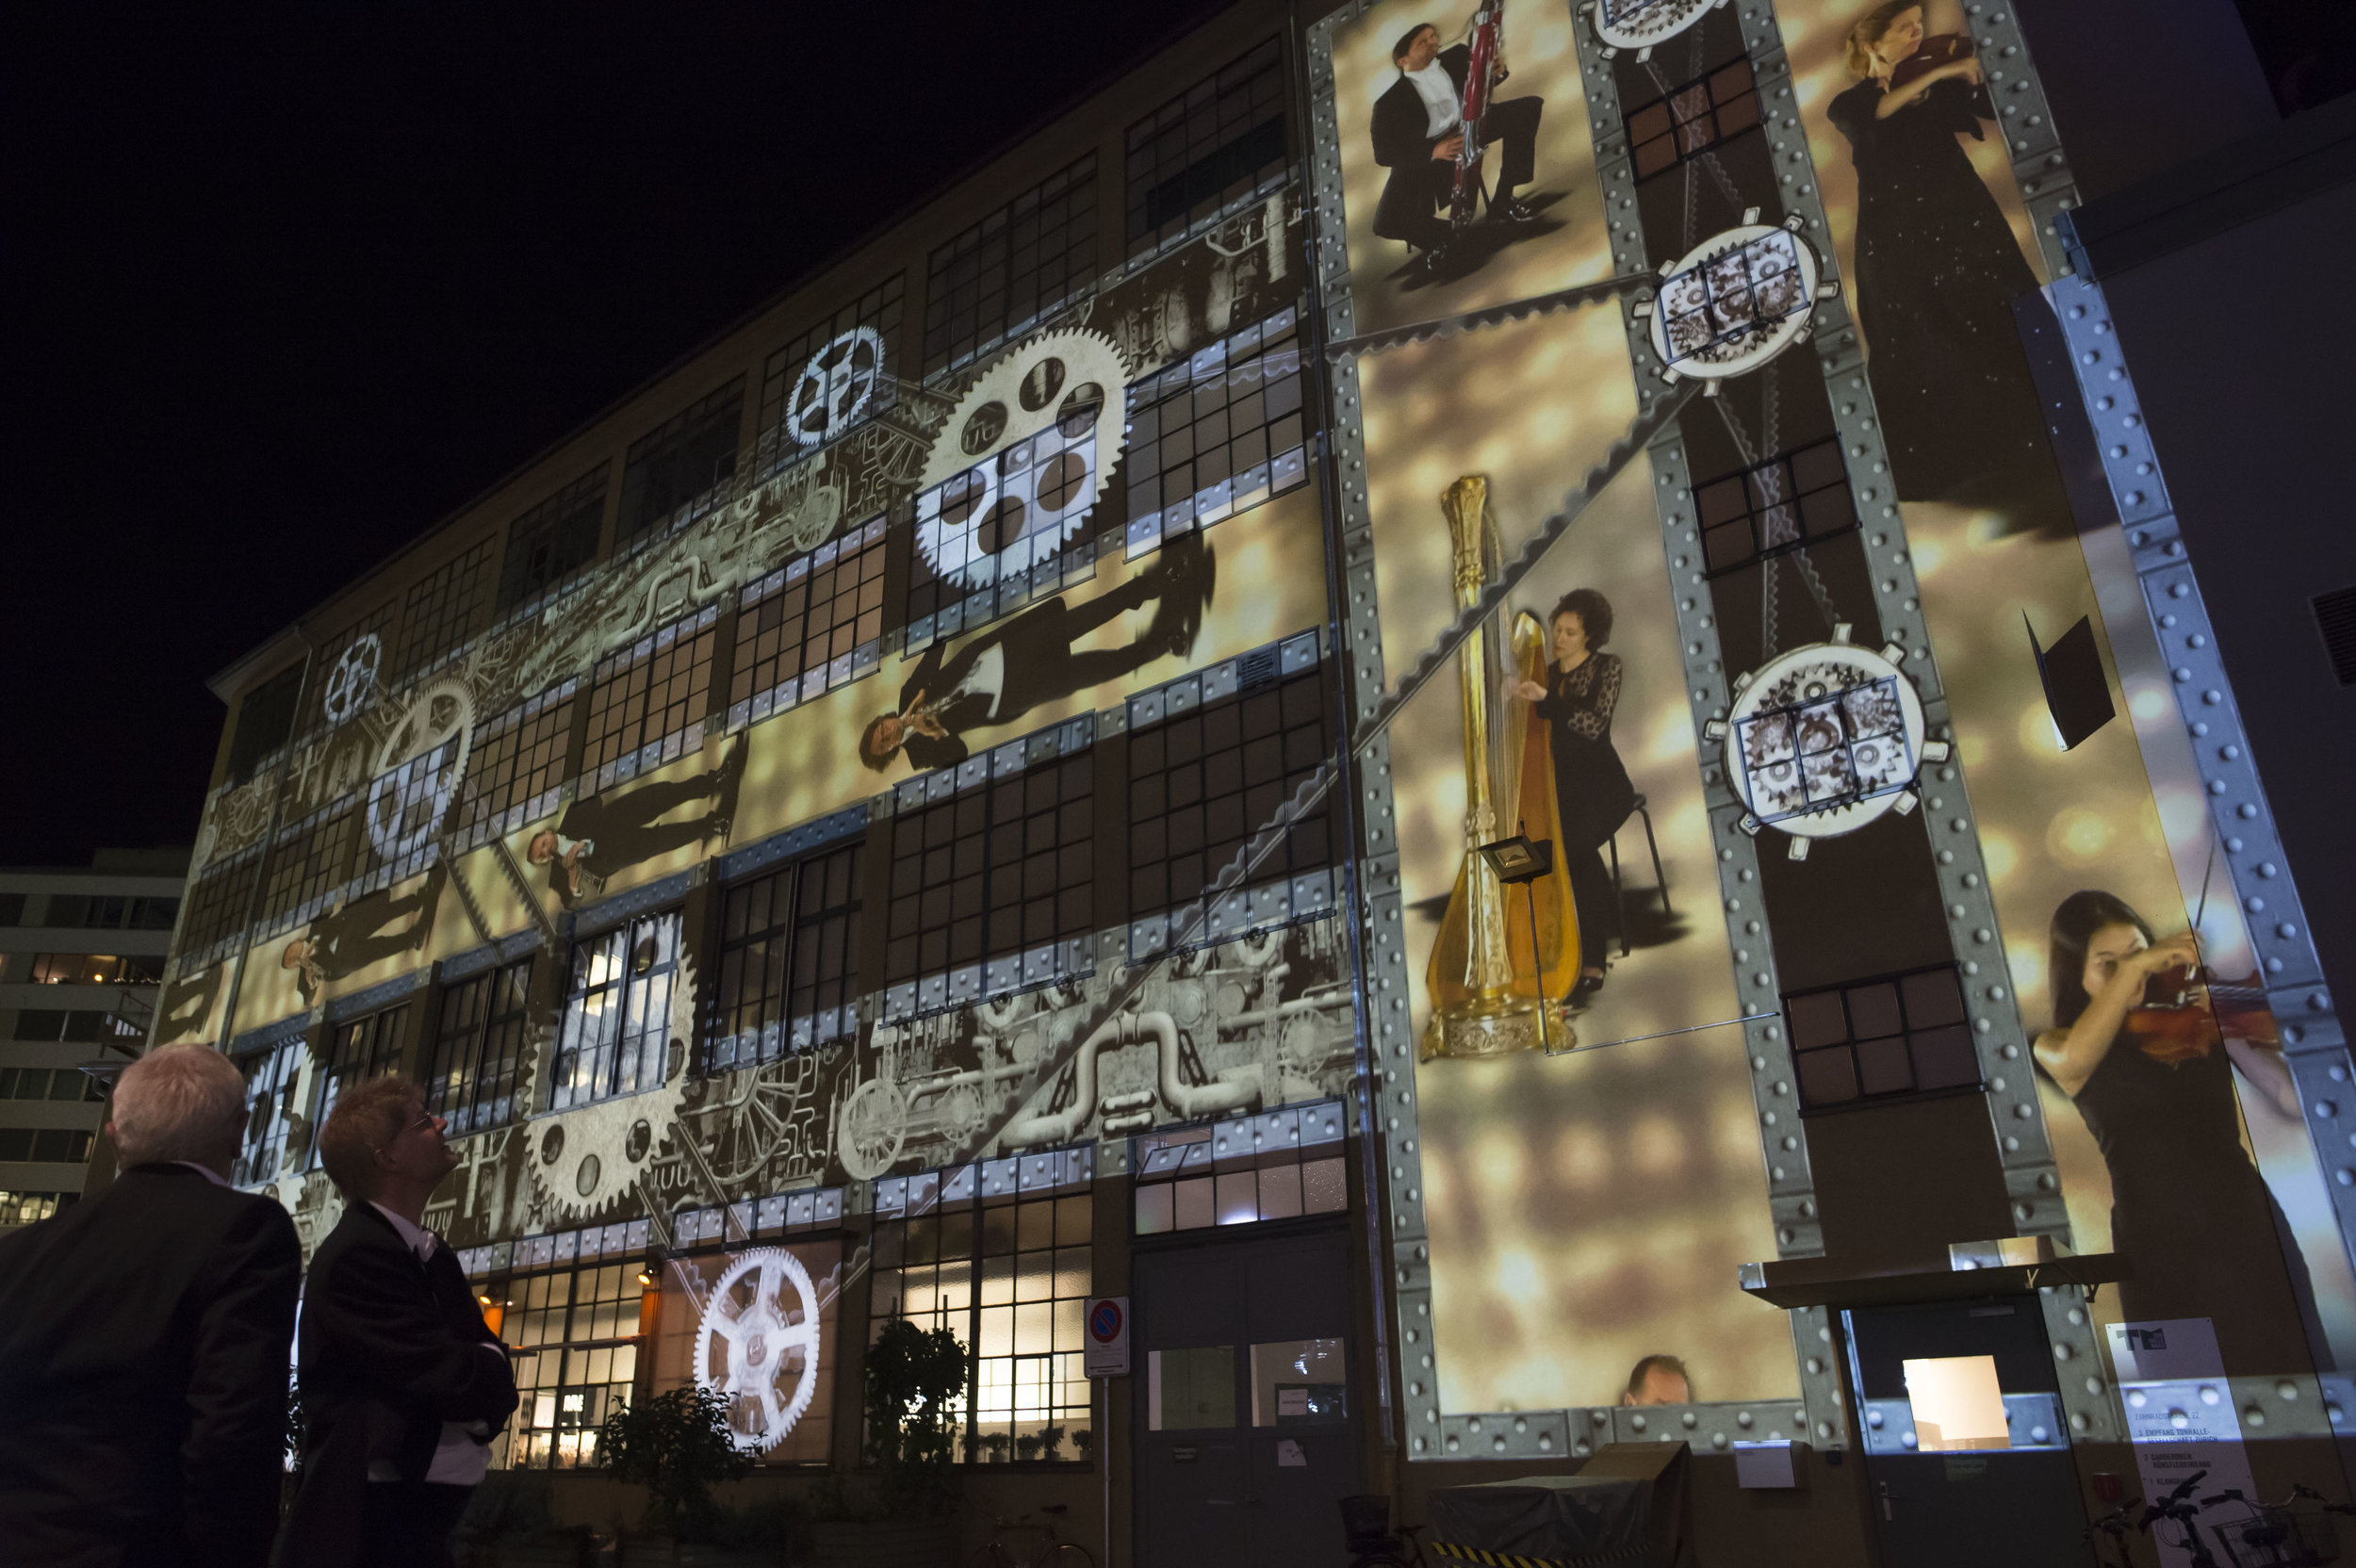 Ton im Getriebe , projection mapping